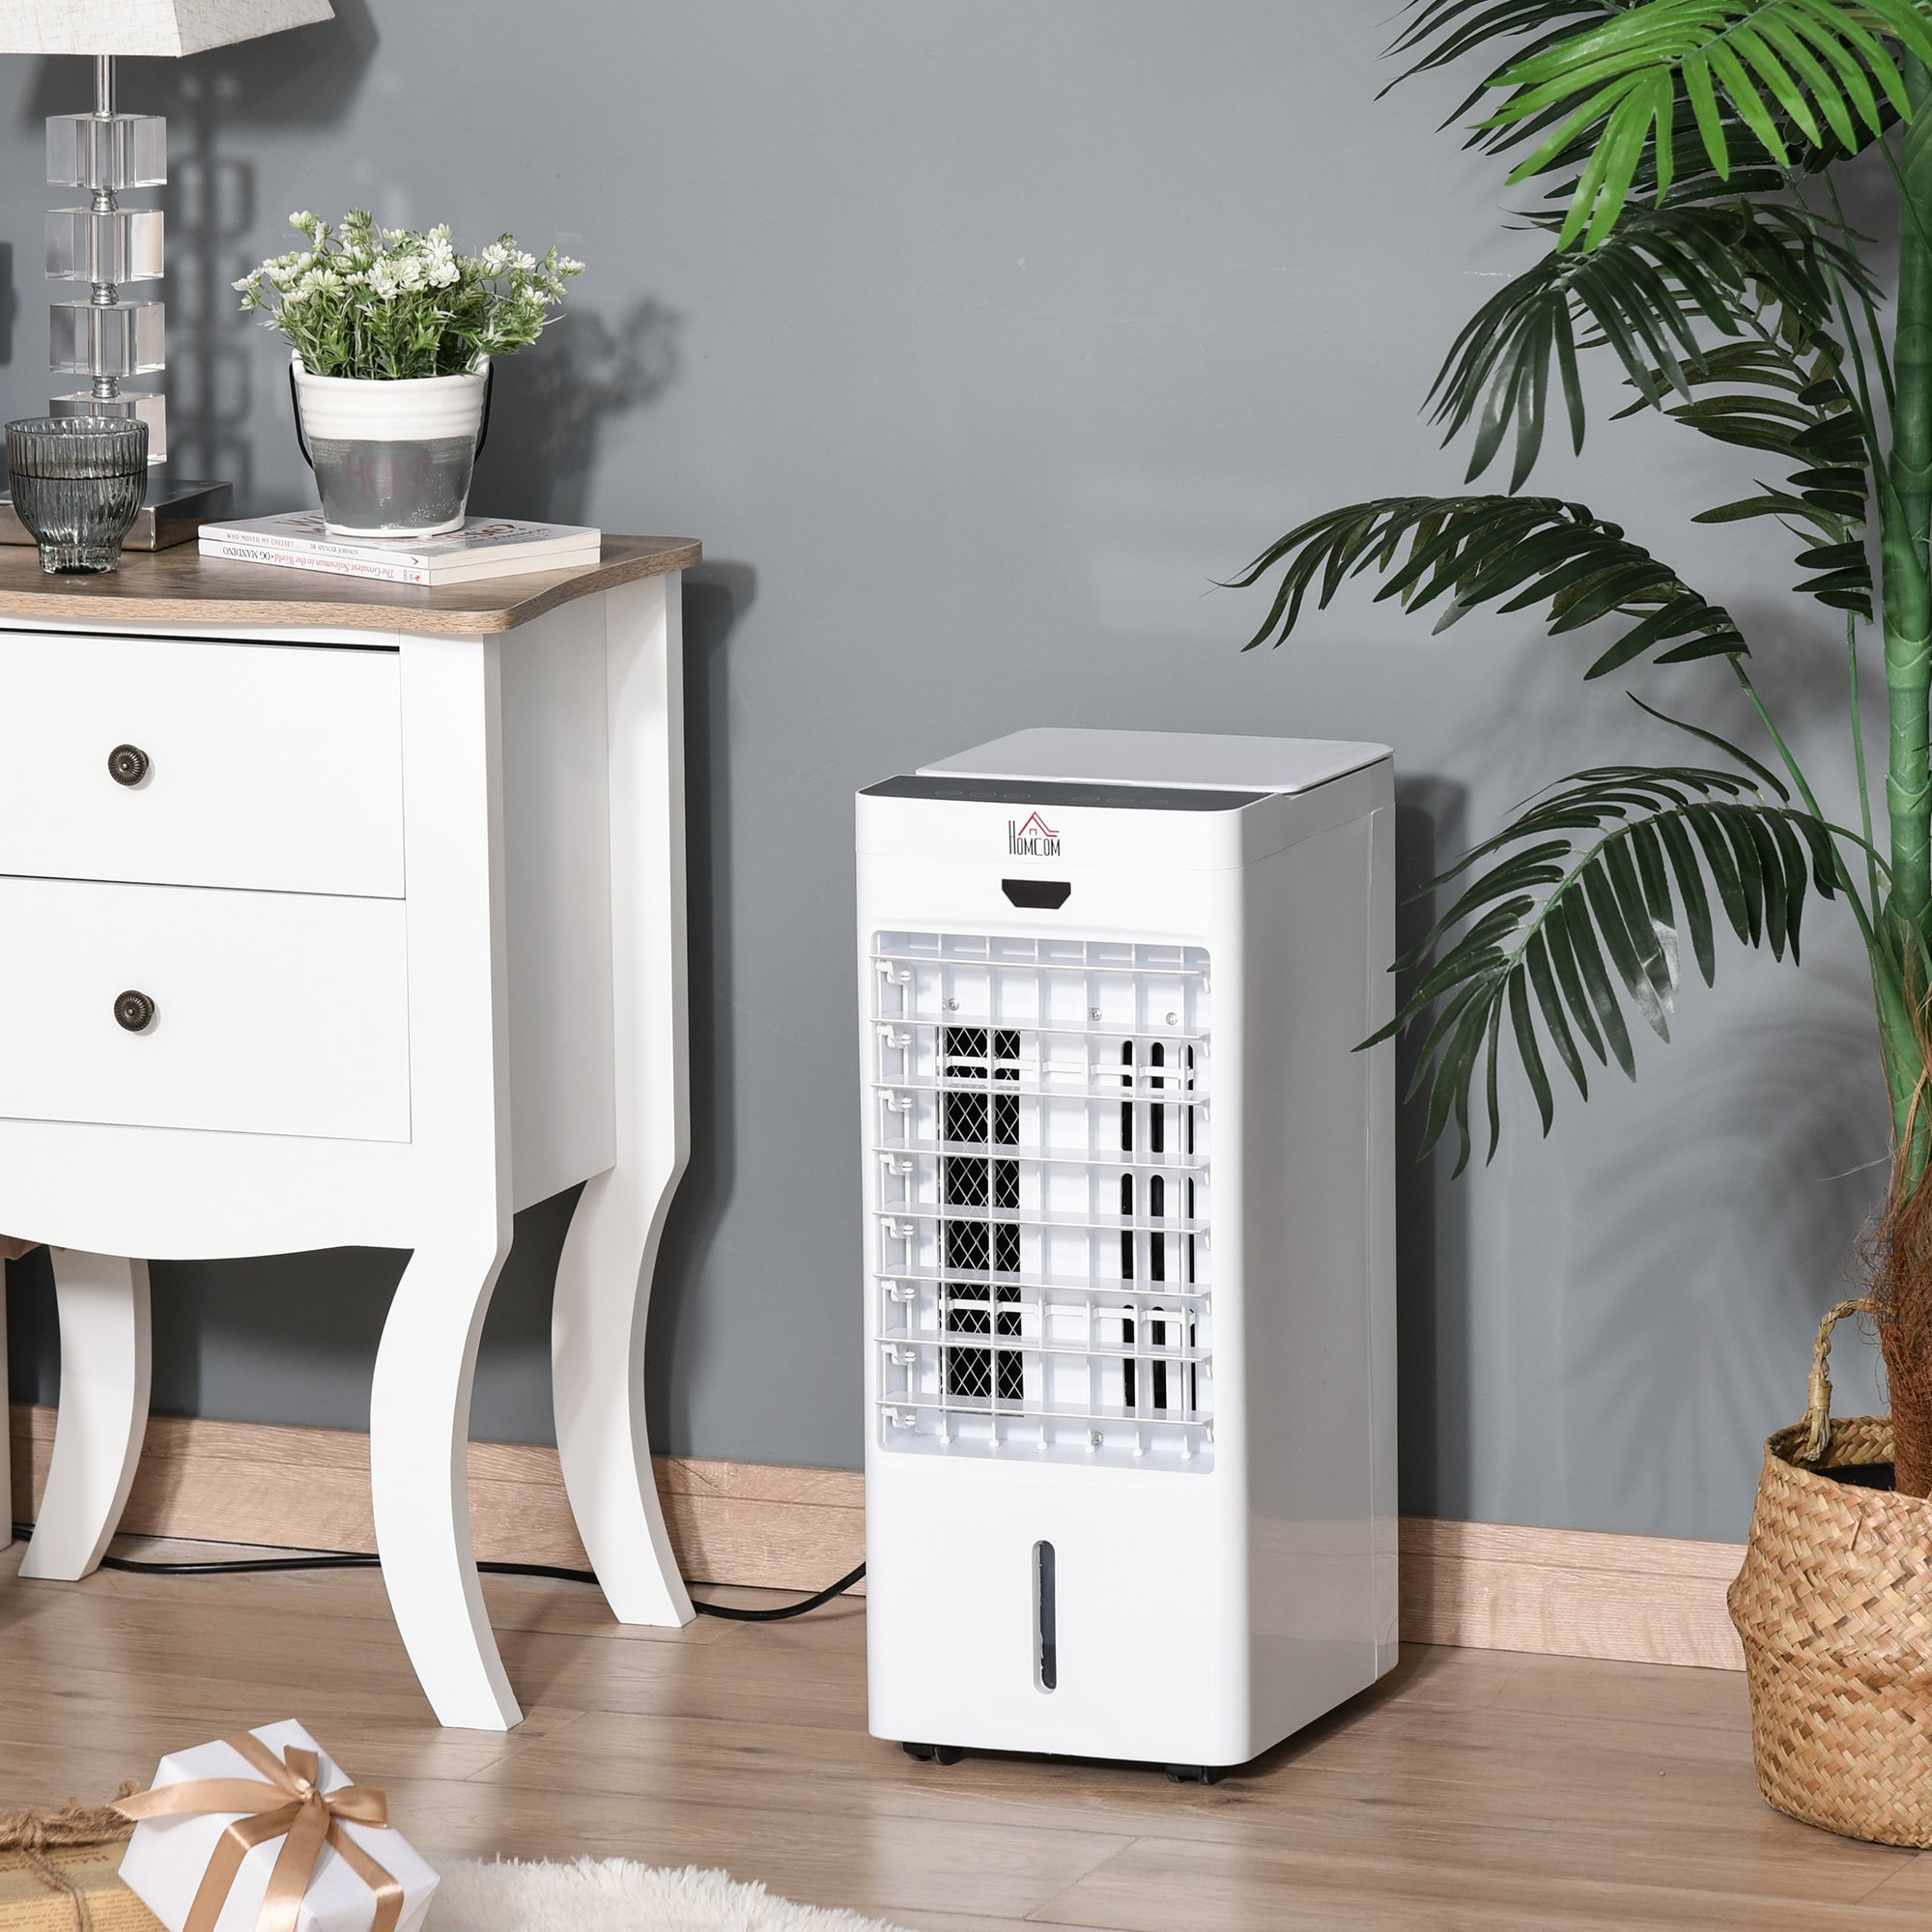 HOMCOM Air Cooler Ice Cooling Function 3 Speed 3 Mode 7.5 Timer Ice Box Home Office